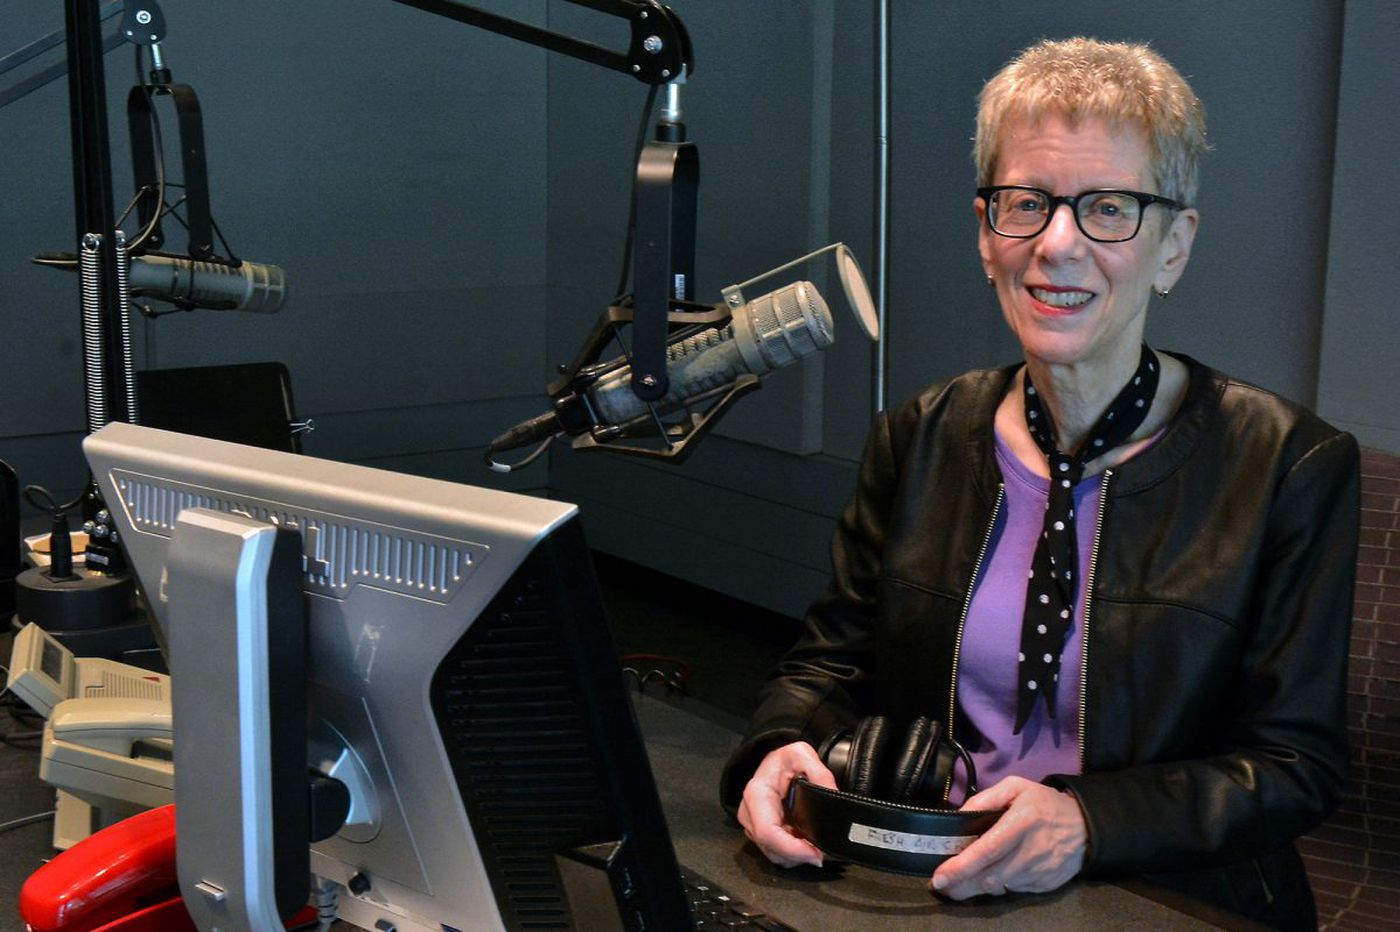 Fresh Air host Terry Gross to appear on 'The Tonight Show' this week